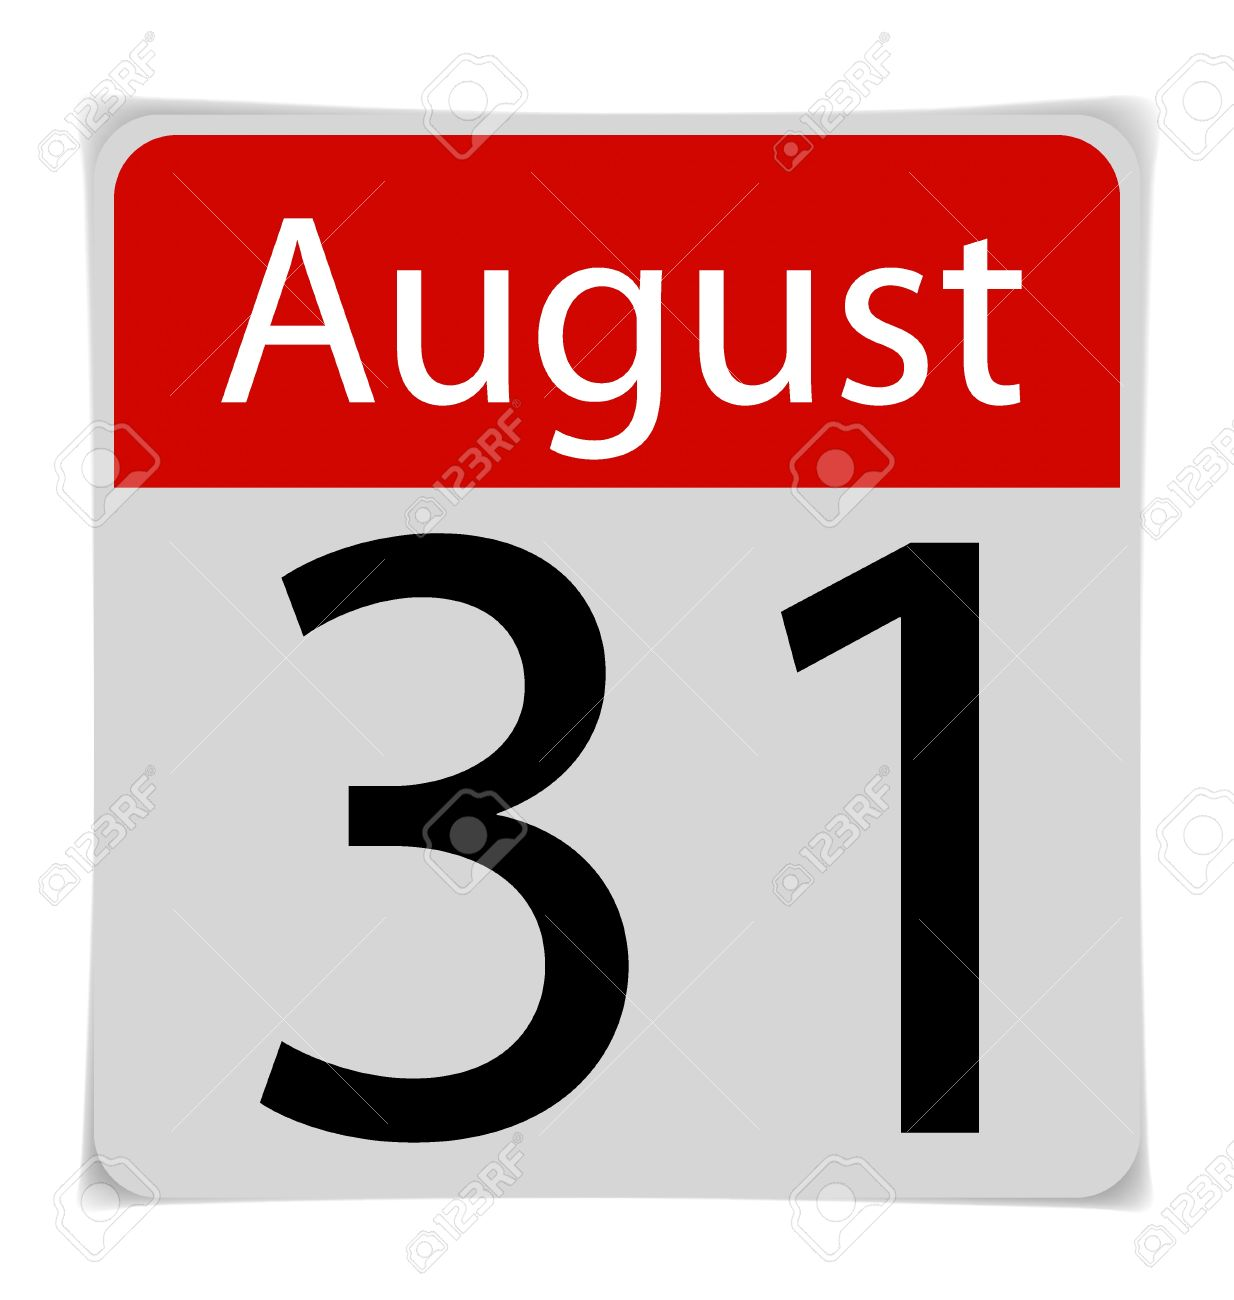 Simple date th royalty. August 31st calendar clipart